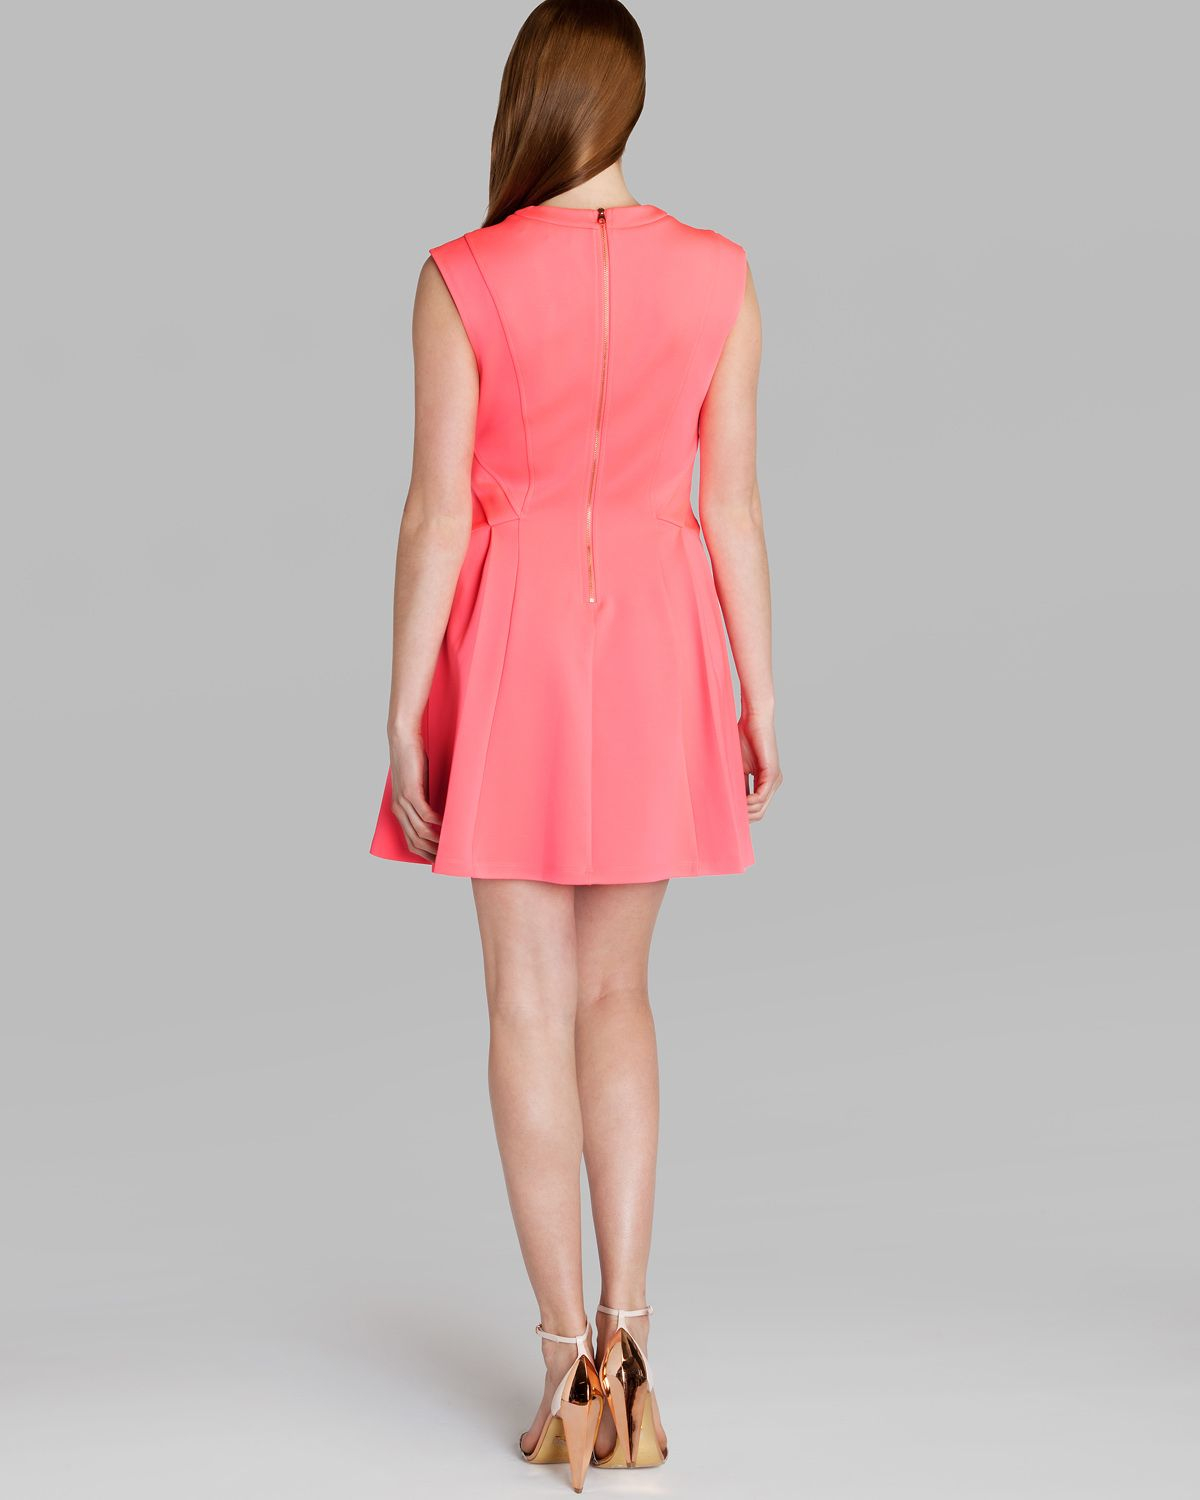 f6148dc151d7e0 Lyst - Ted Baker Dress Nistee Skater in Pink